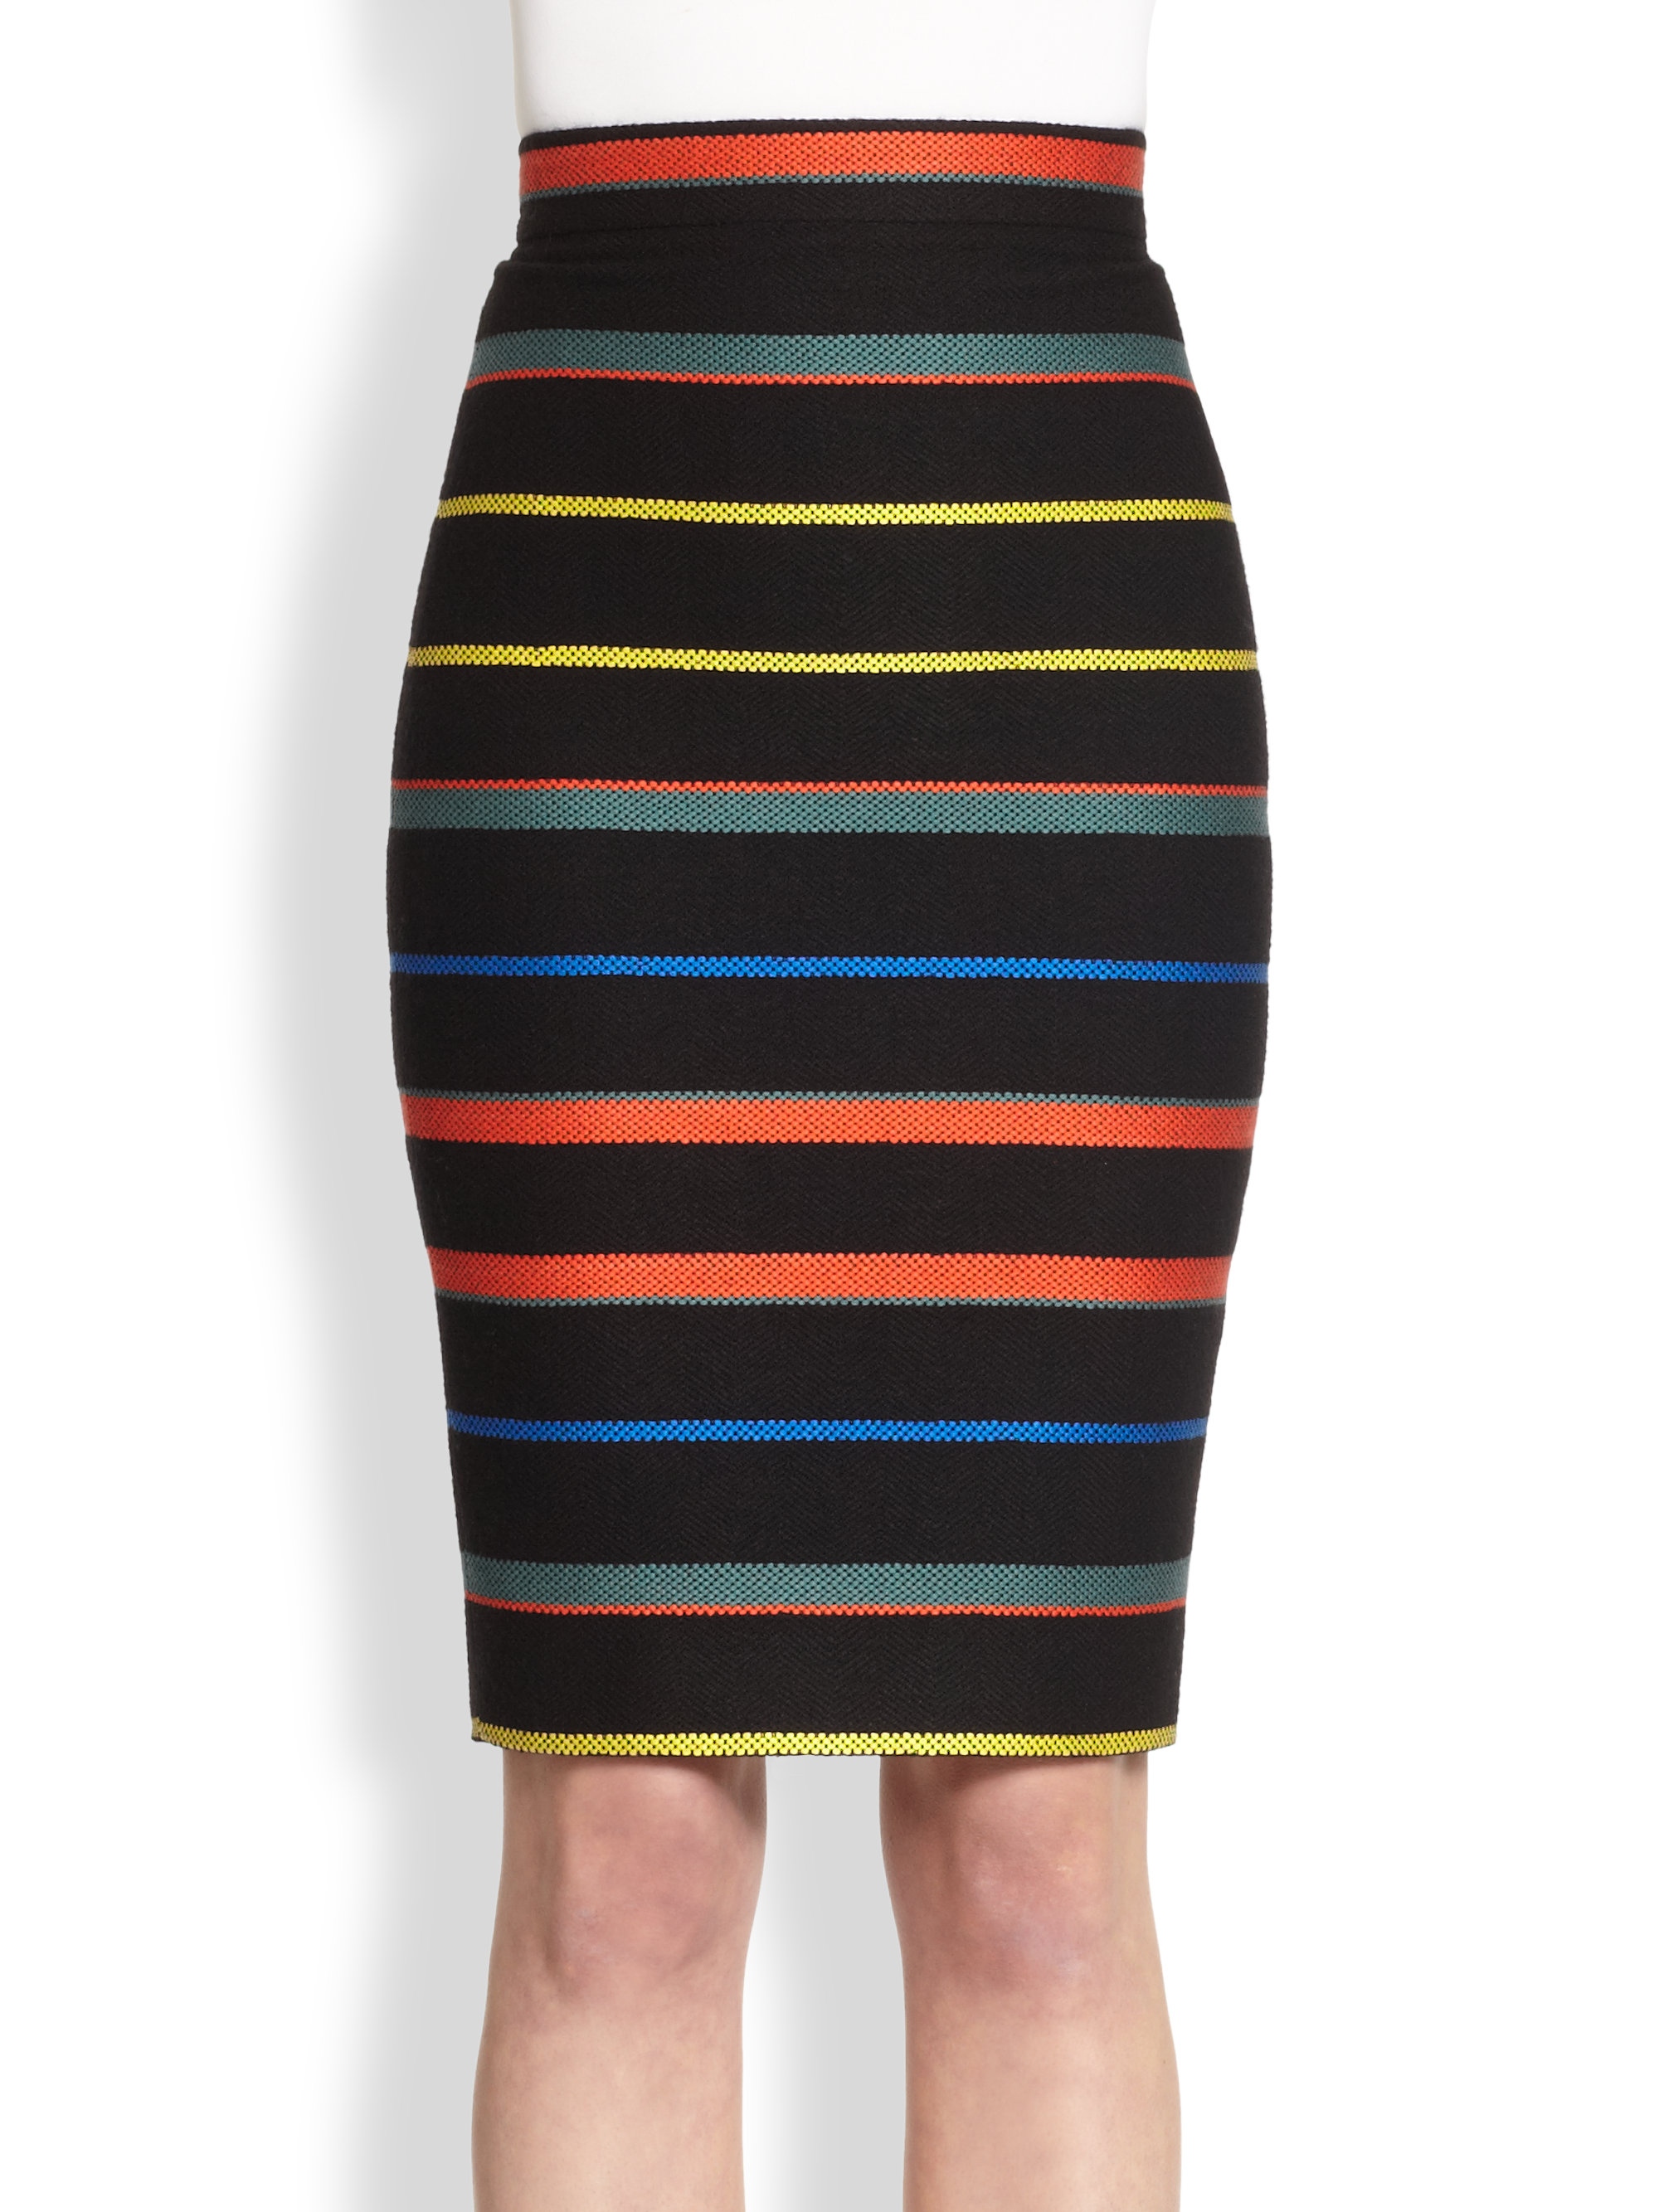 Givenchy Knit Stripe Pencil Skirt in Multicolor | Lyst